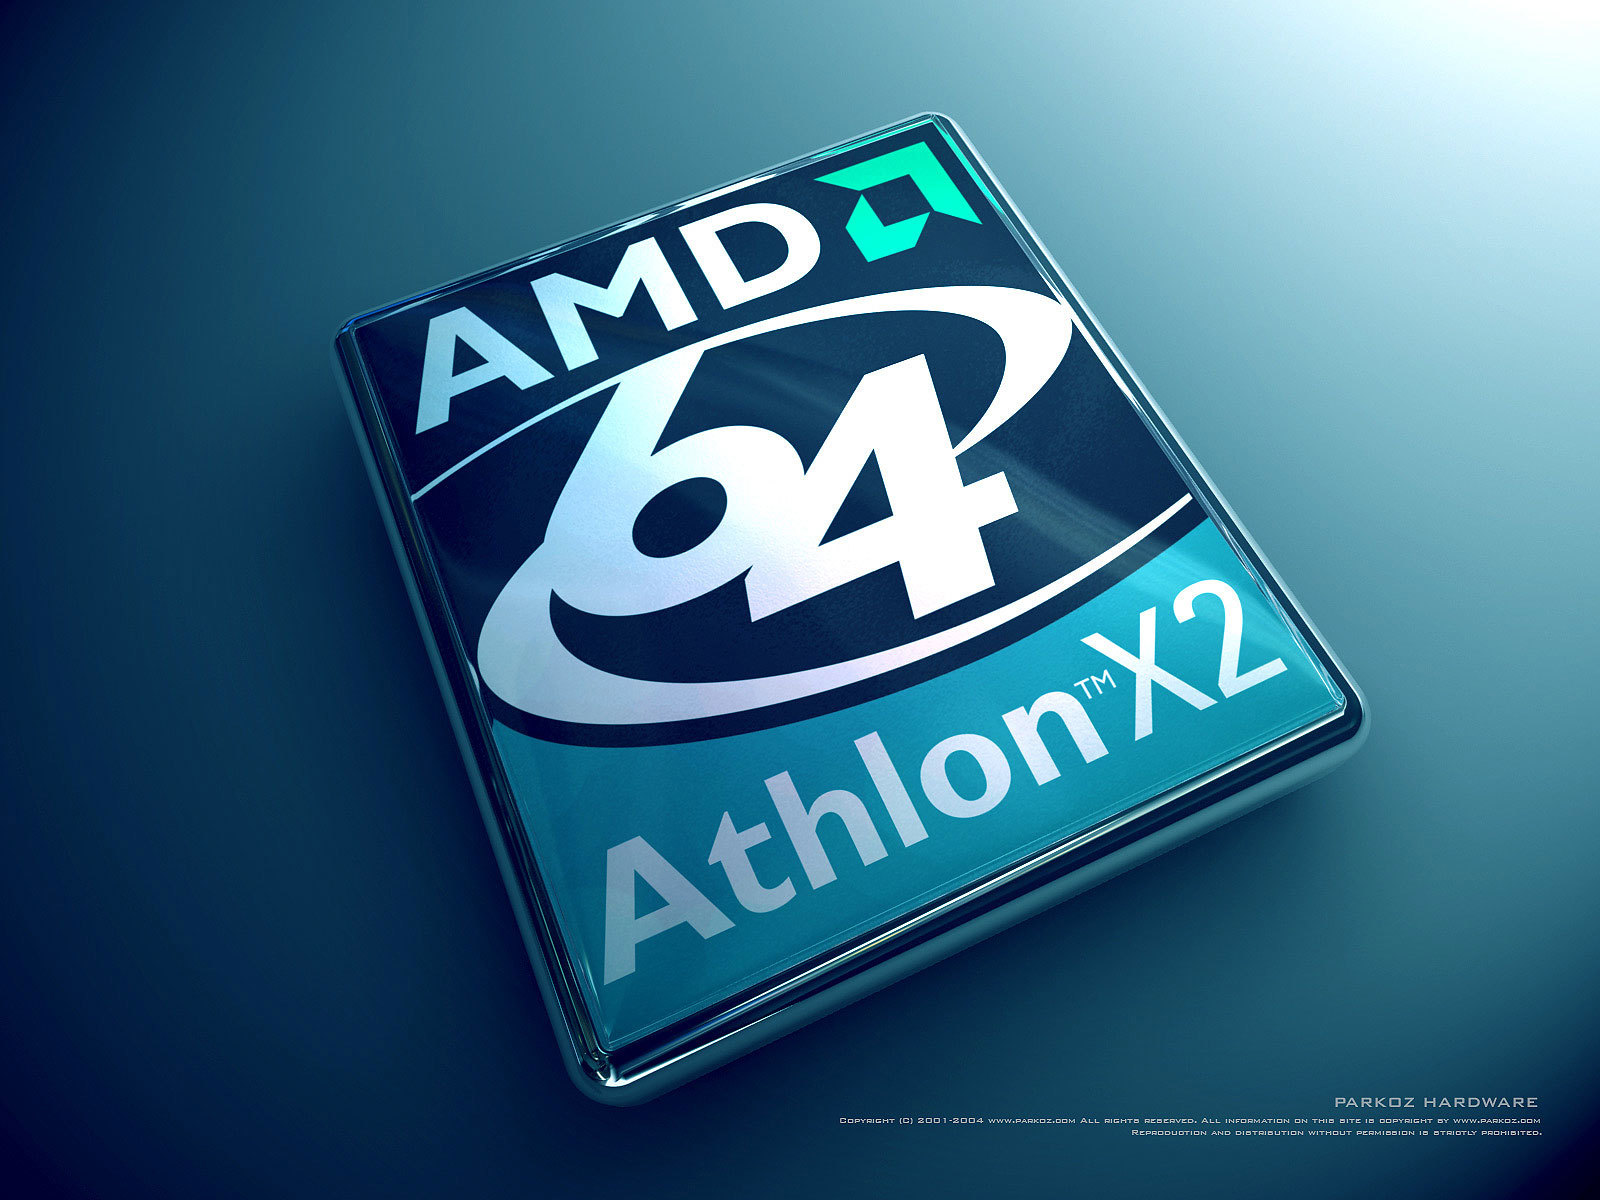 amd athlon computer HD Wallpaper